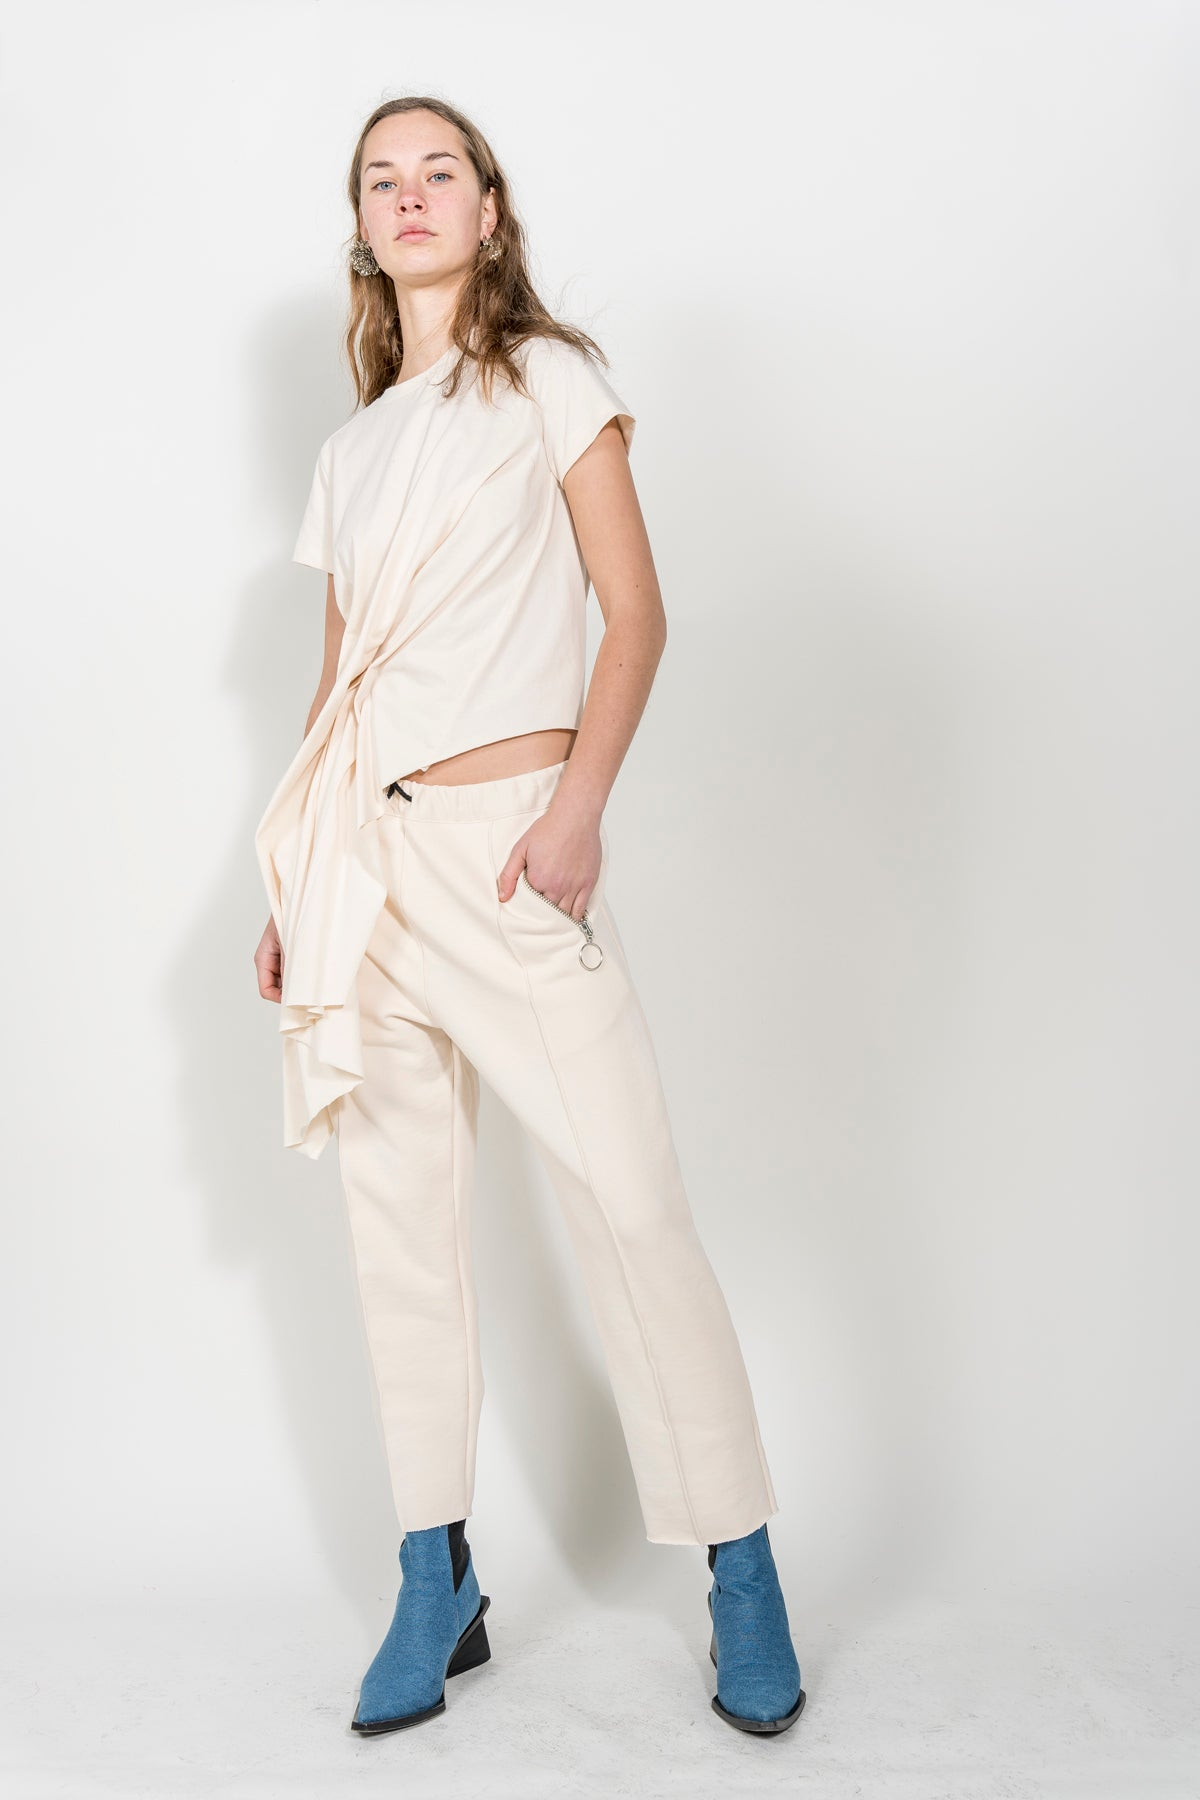 BEIGE DRAPED CAP SLEEVE T-SHIRT marques almeida